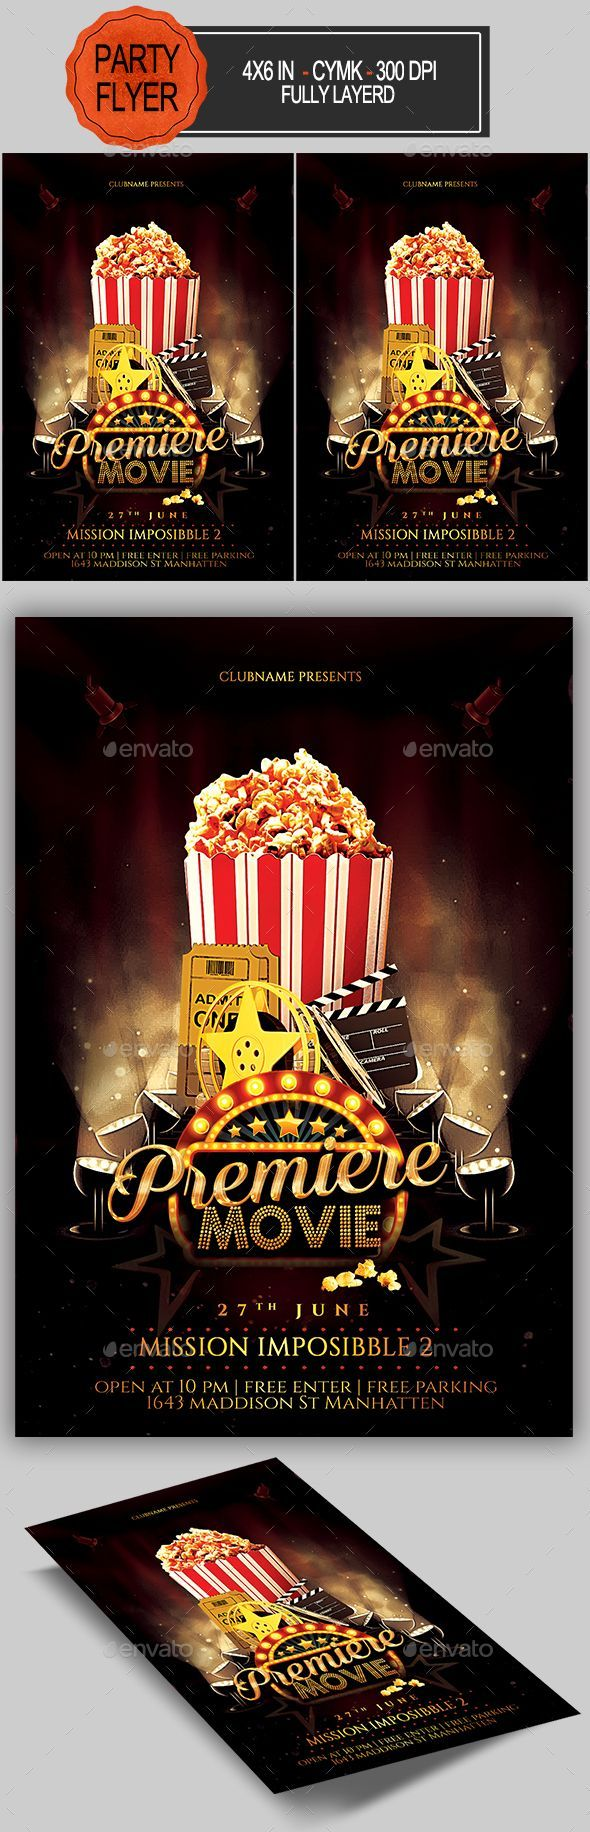 Movie Flyer. Customizable professional template for a flyer.